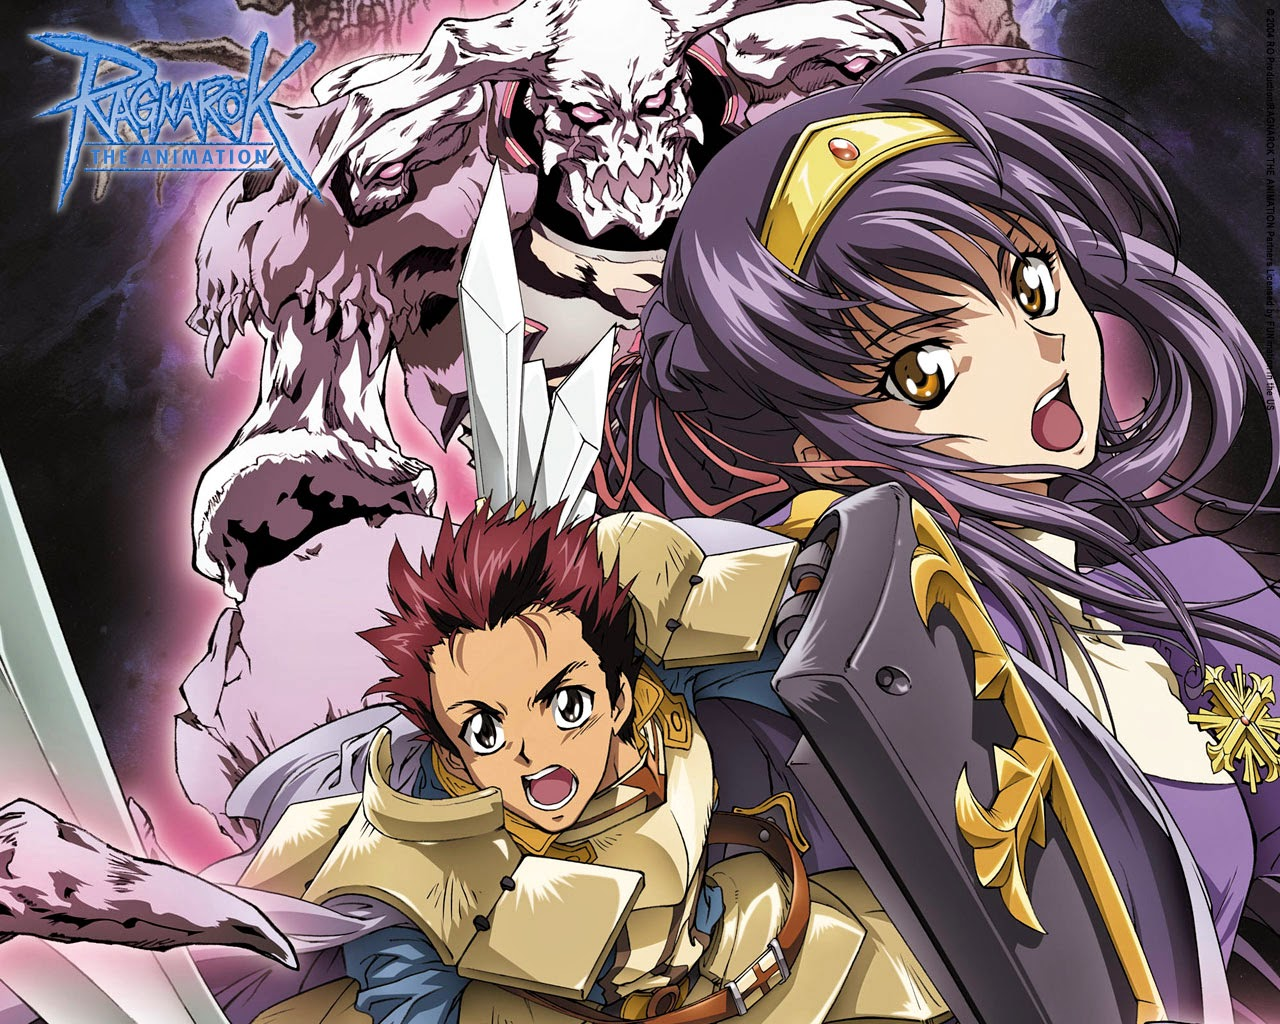 Ragnarok: The Animation (Anime)